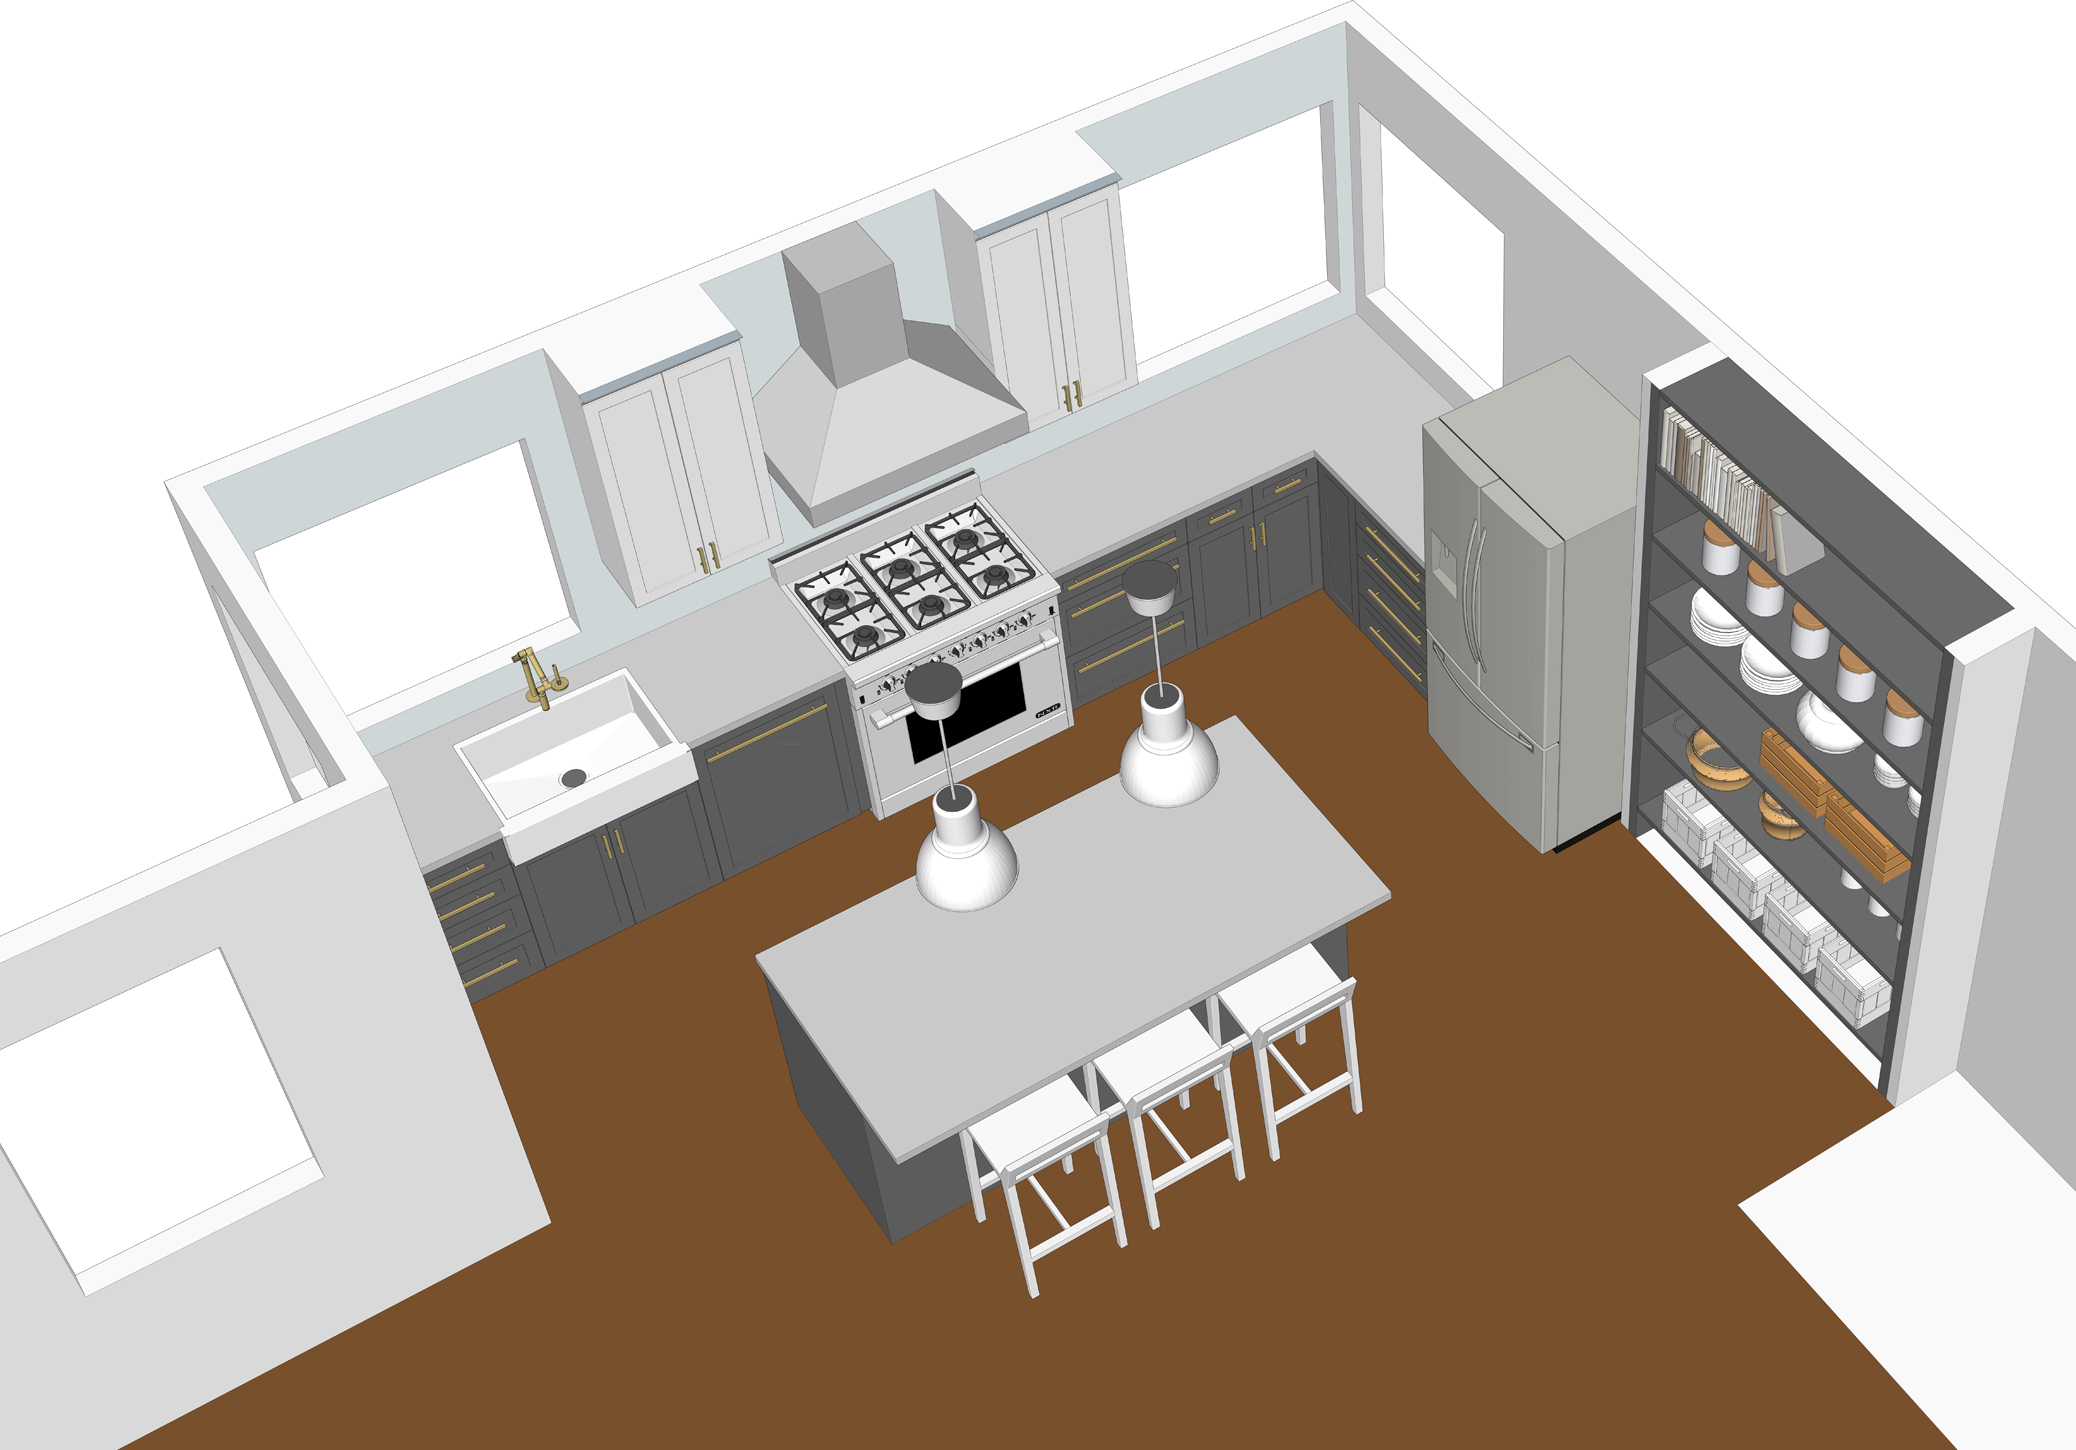 Using google sketchup to design a kitchen bay on a budget - Cool free kitchen planning software making the designing phase easier ...